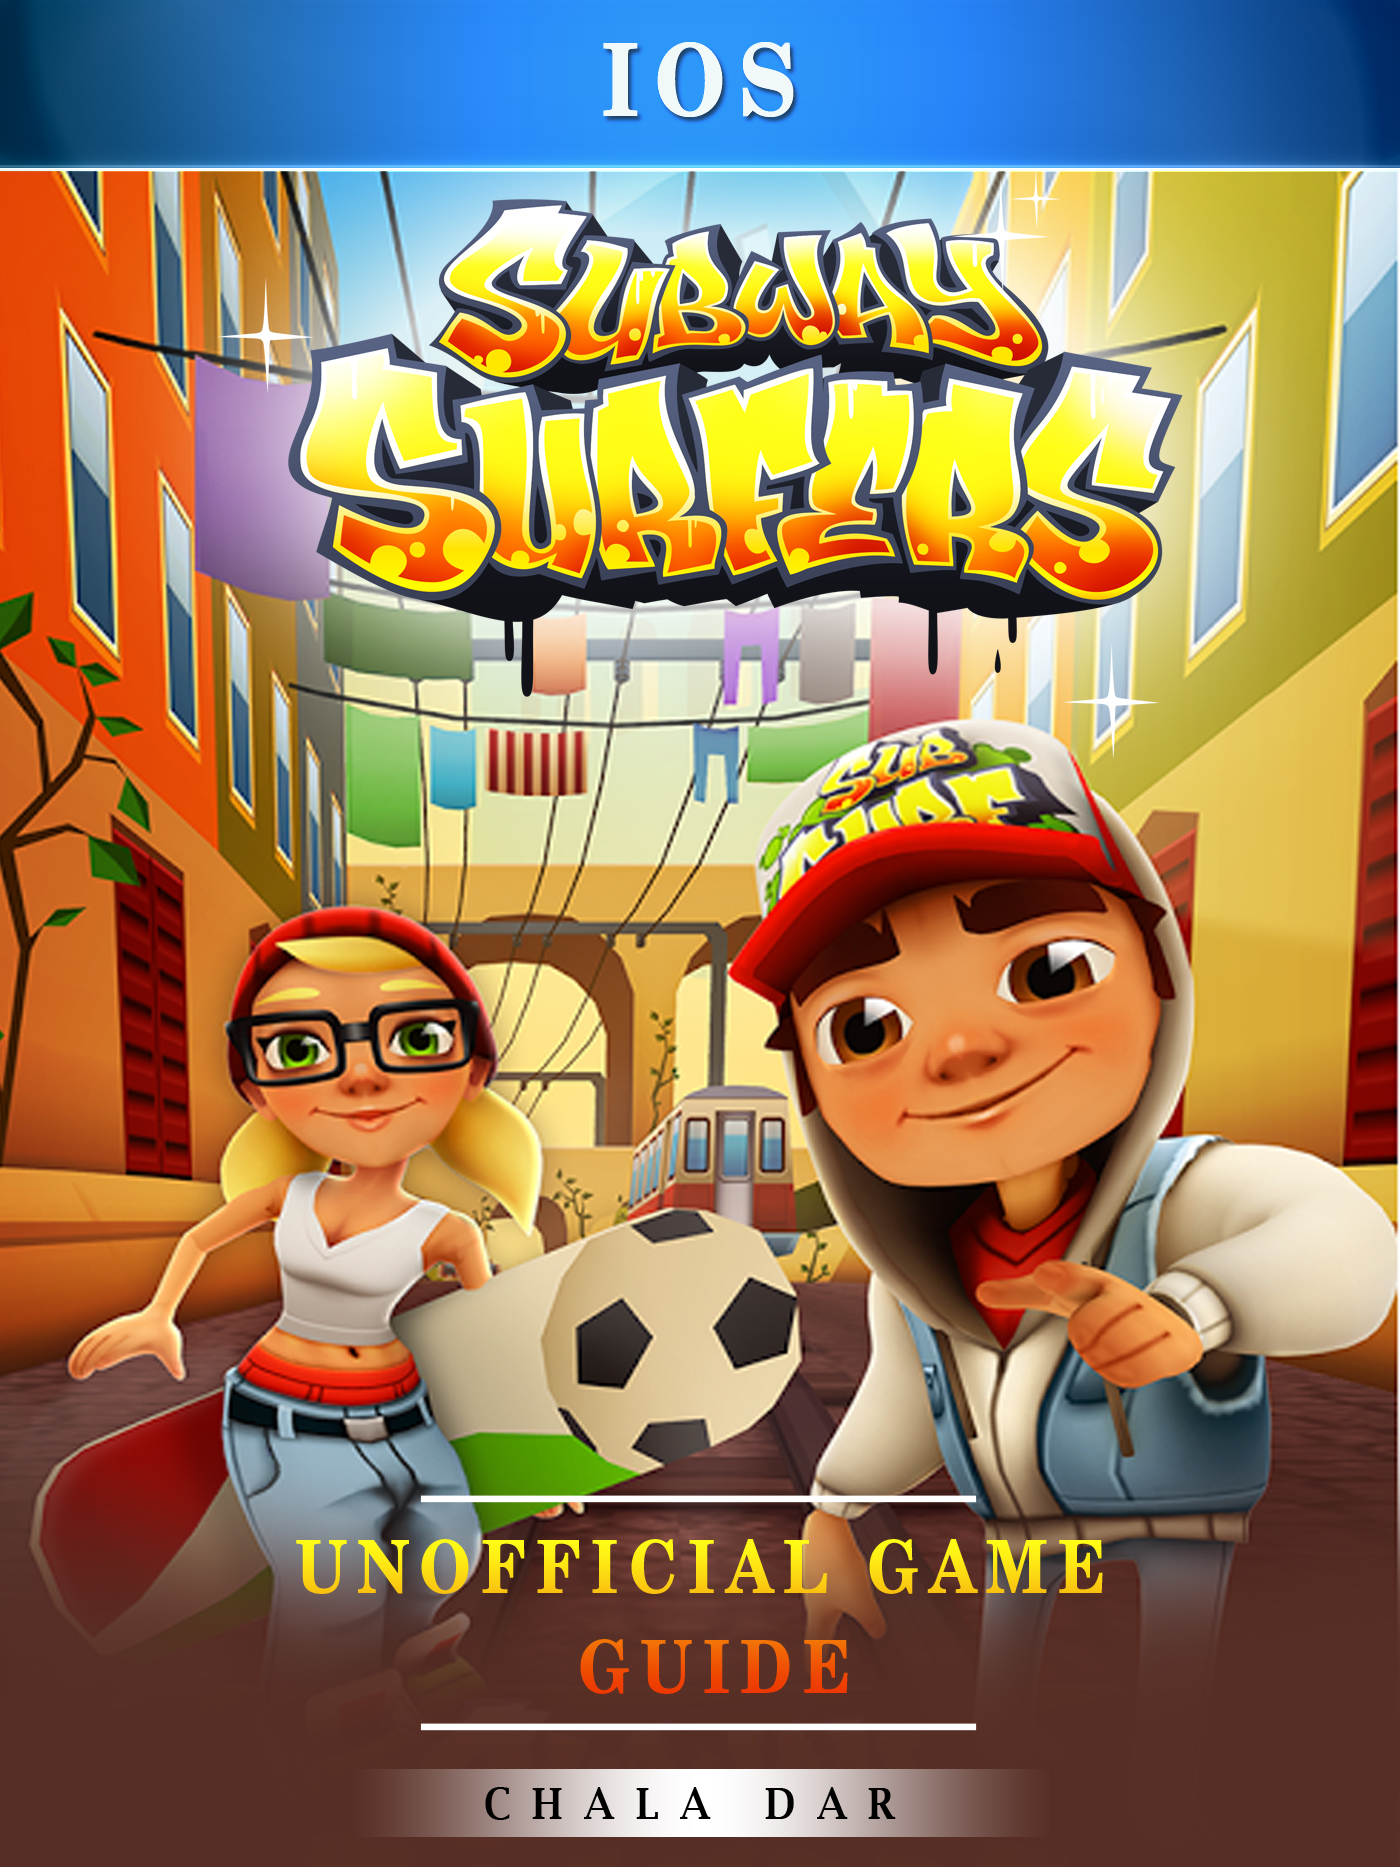 Subway Surfers iOS Unofficial Game Guide By Chala Dar